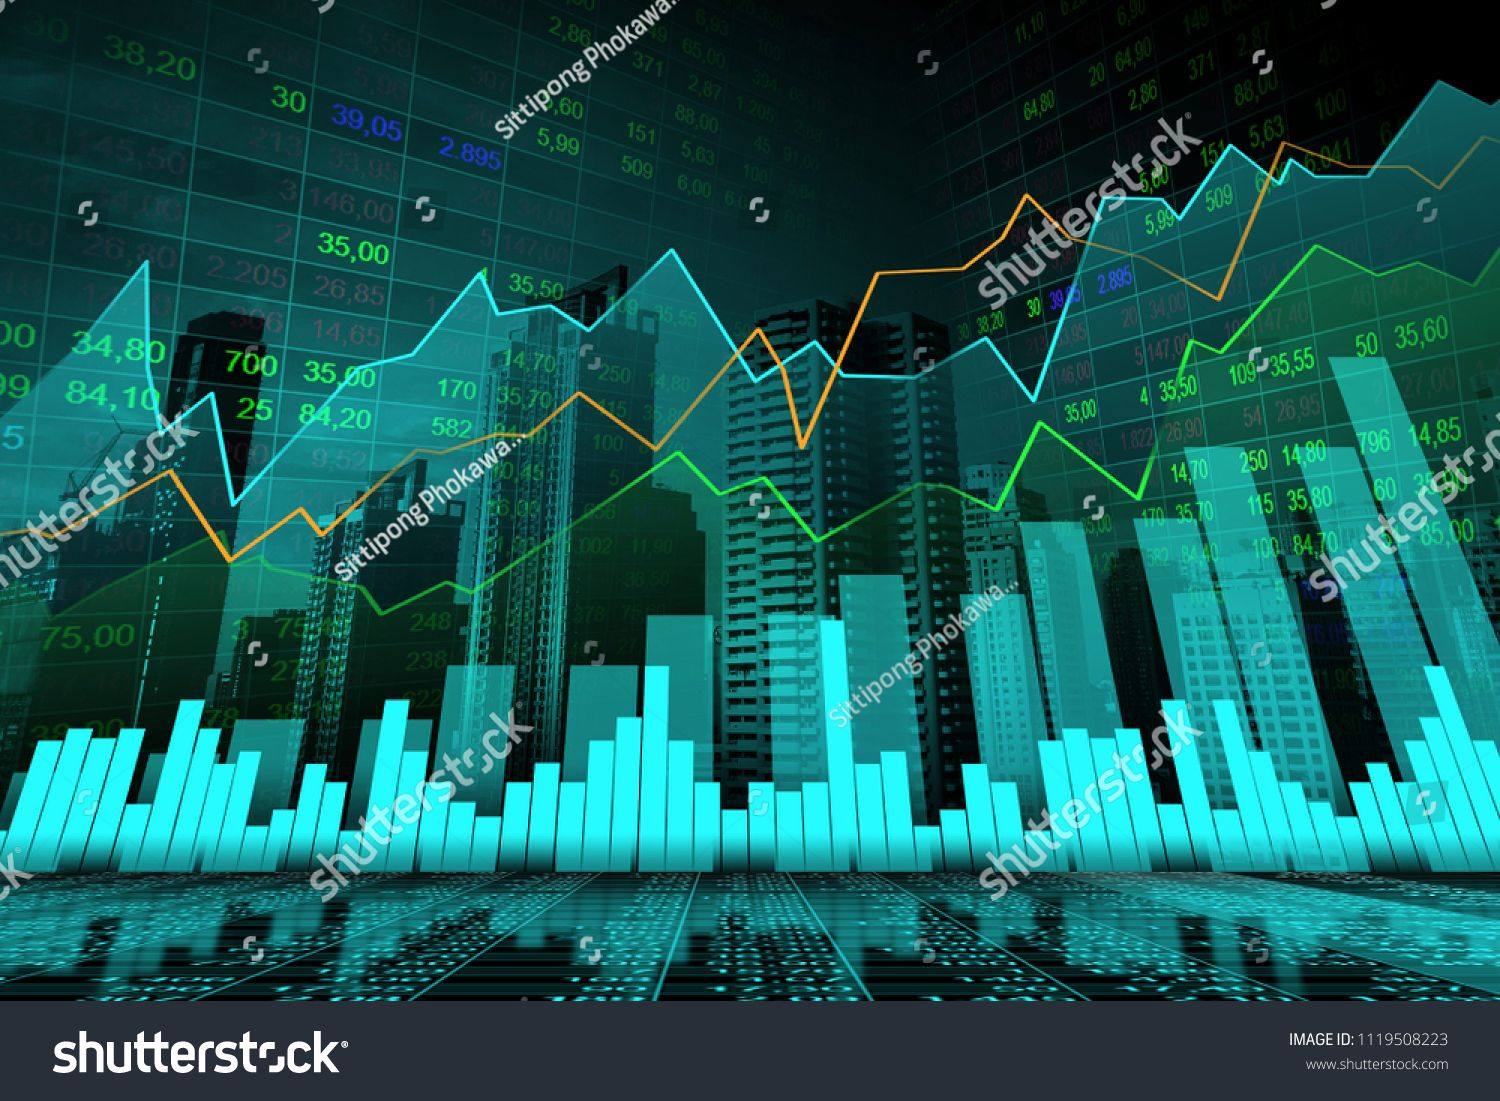 Stock Market Or Forex Trading Graph In Graphic Double Exposure Concept Suitable For Financial Investment Or Econom Stock Market Economic Trends Double Exposure